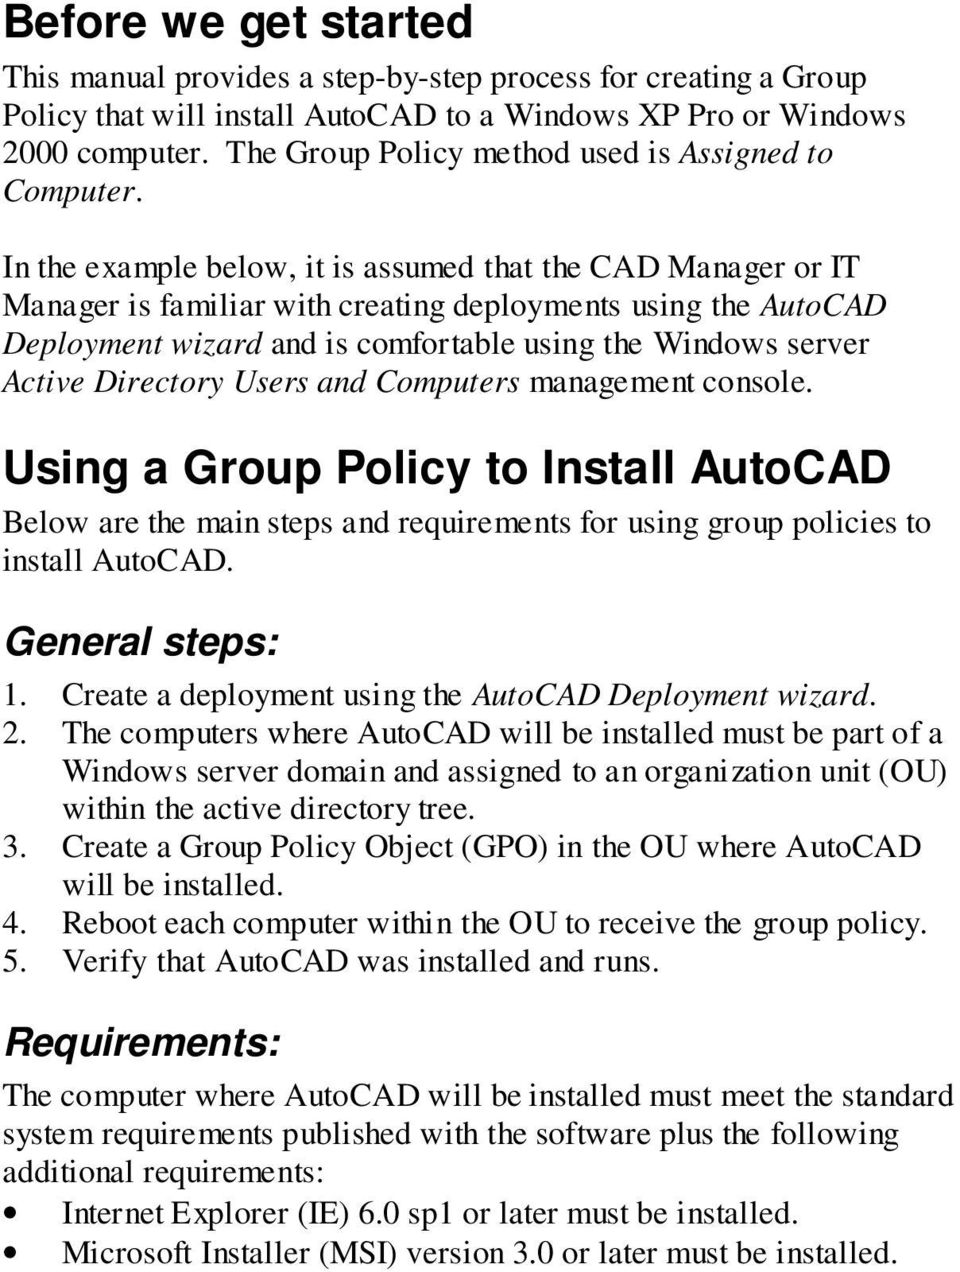 In the example below, it is assumed that the CAD Manager or IT Manager is familiar with creating deployments using the AutoCAD Deployment wizard and is comfortable using the Windows server Active